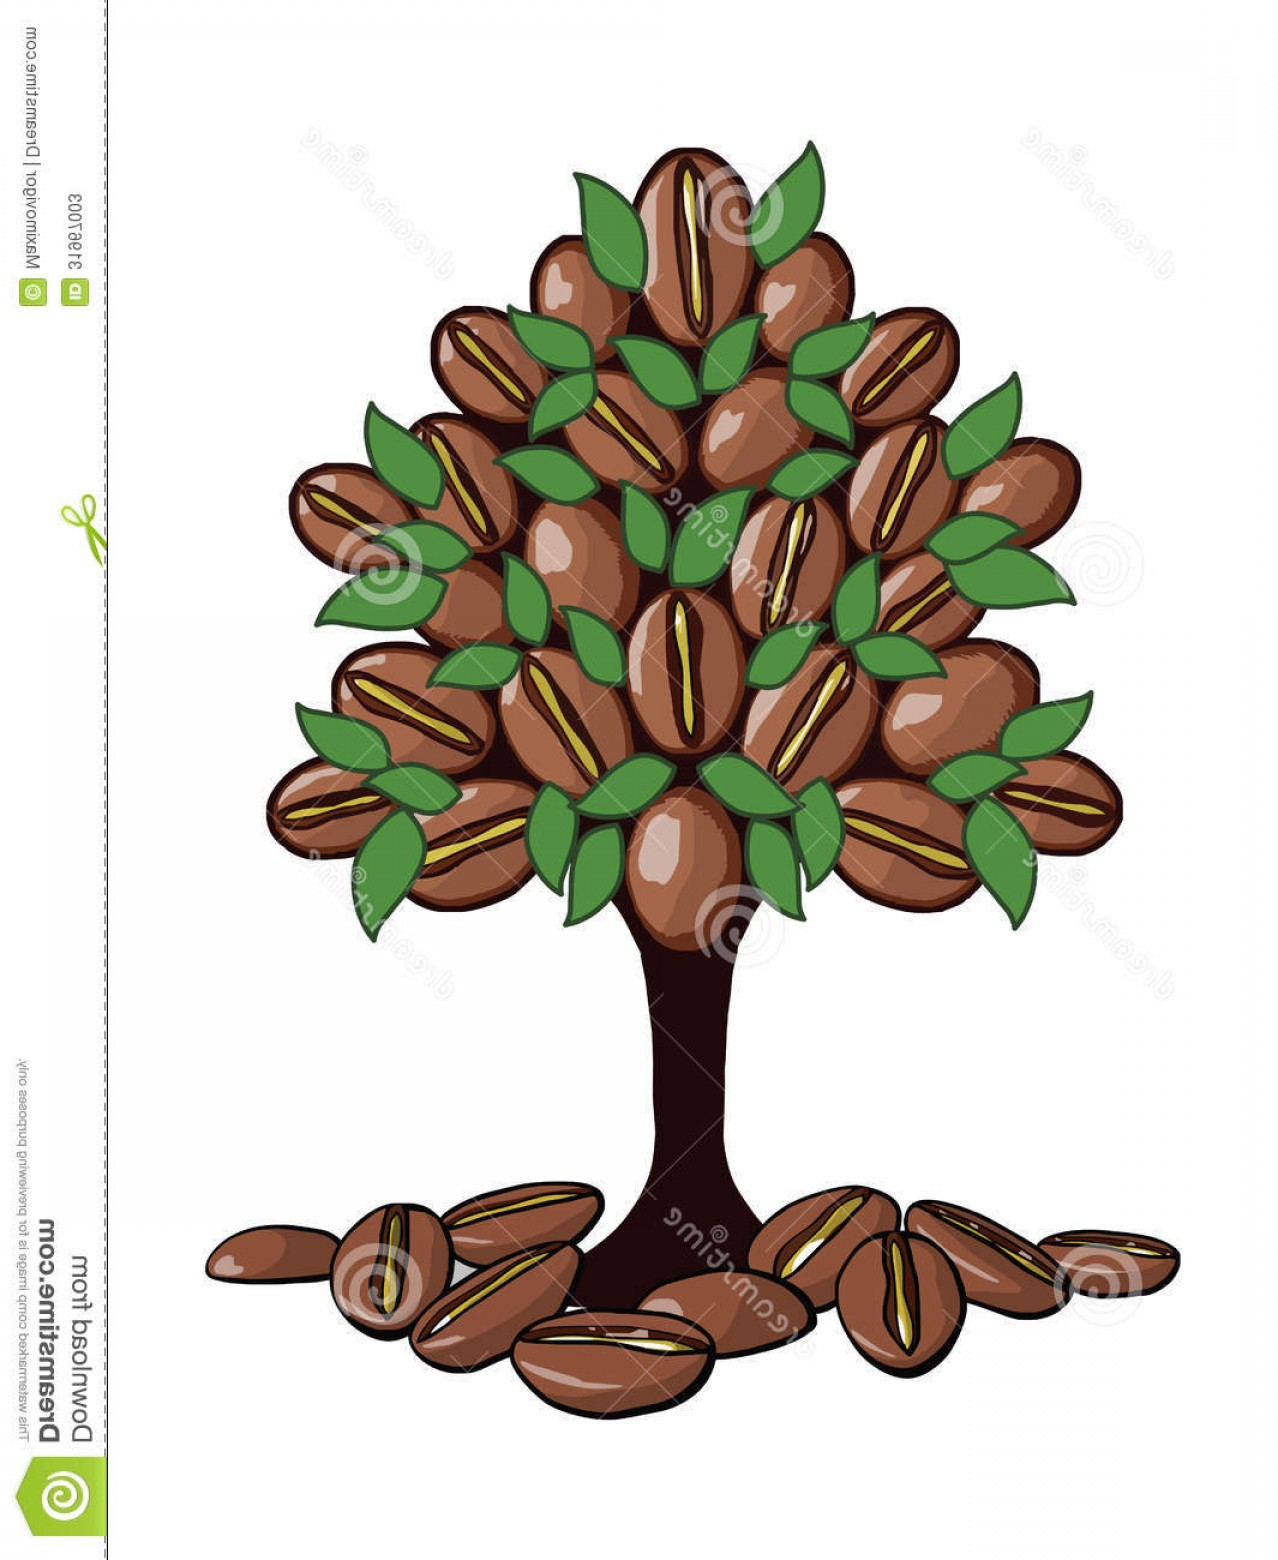 Coffee Tree Vector: Stock Photos Coffee Tree Which Grow Beans Green Leaves Vector Image